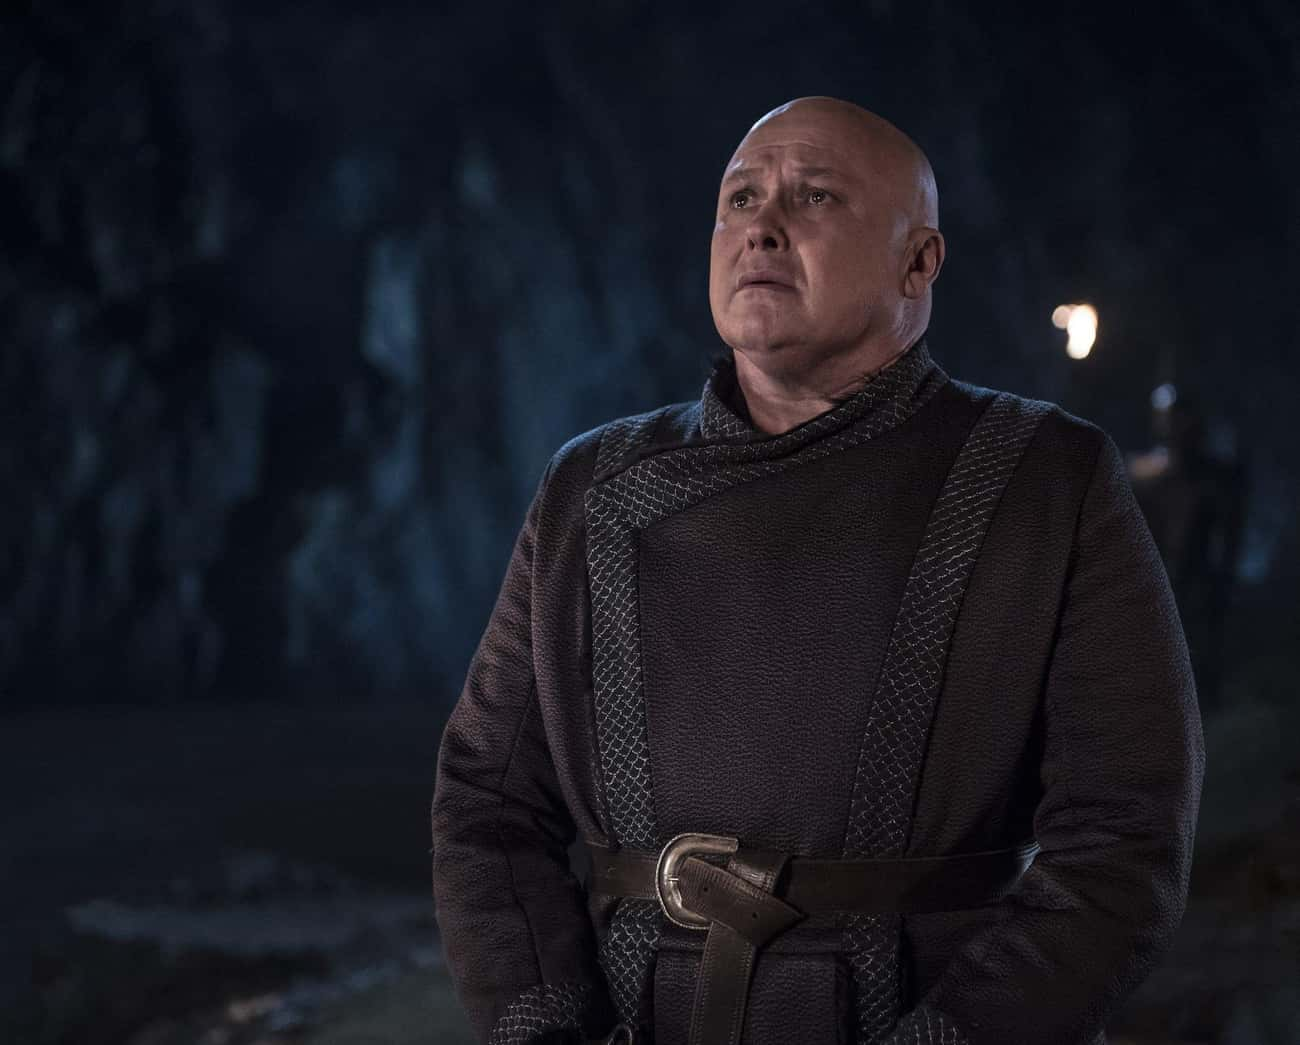 Conleth Hill From 'Game Of Thrones' Said 'Nothing Could Console Me'